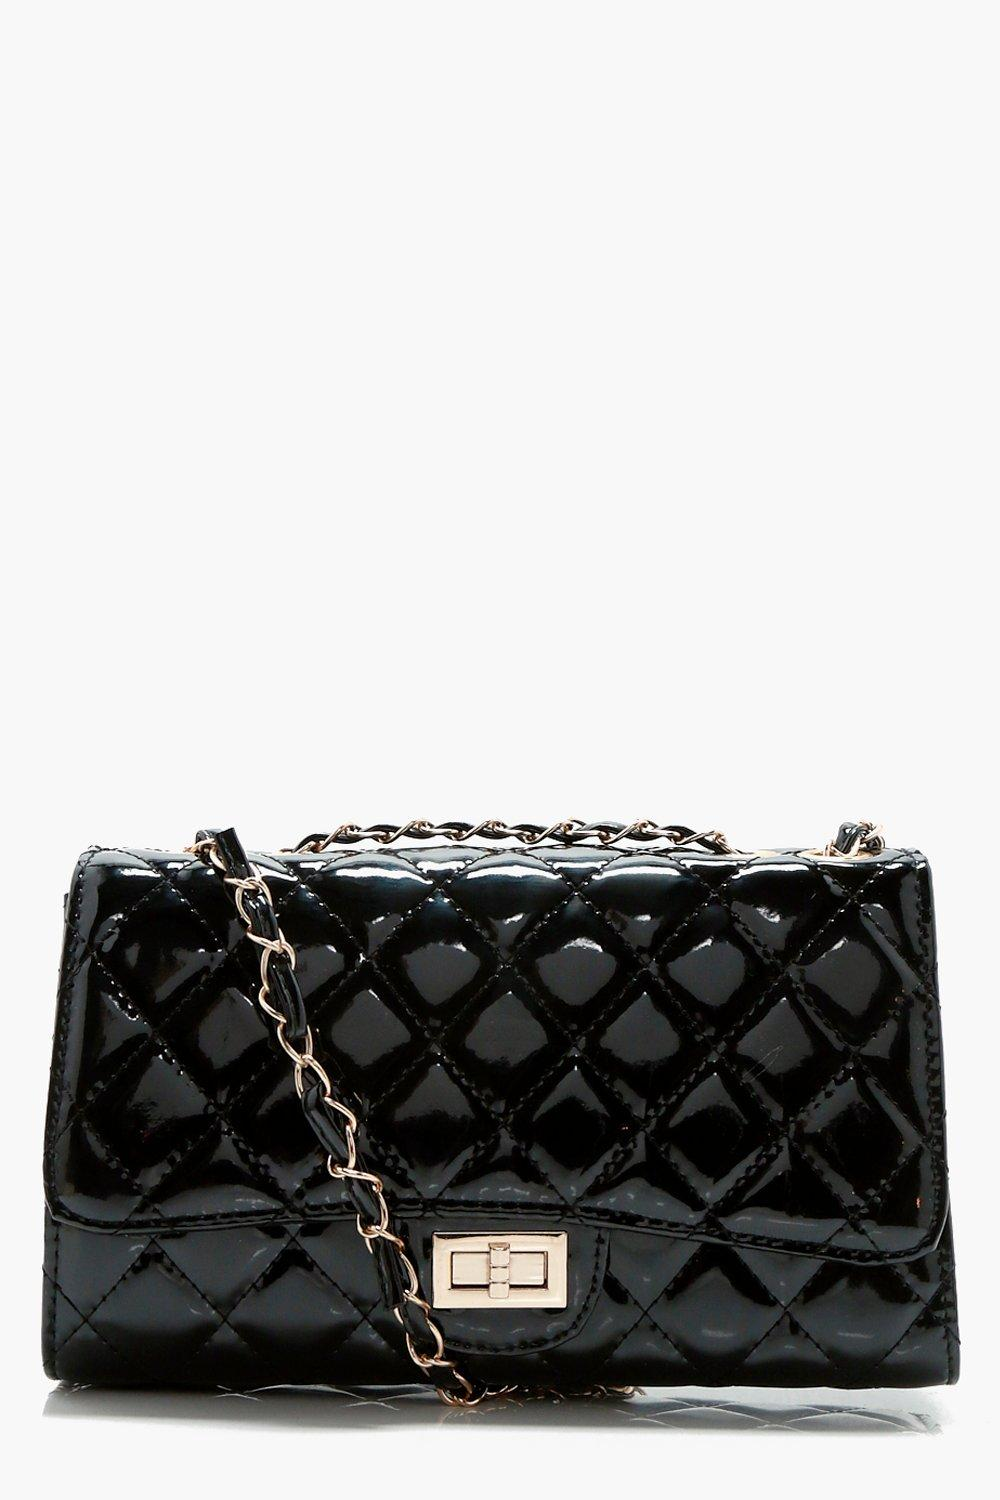 Patent Quilted Cross Body Bag - black - Rosie Pate